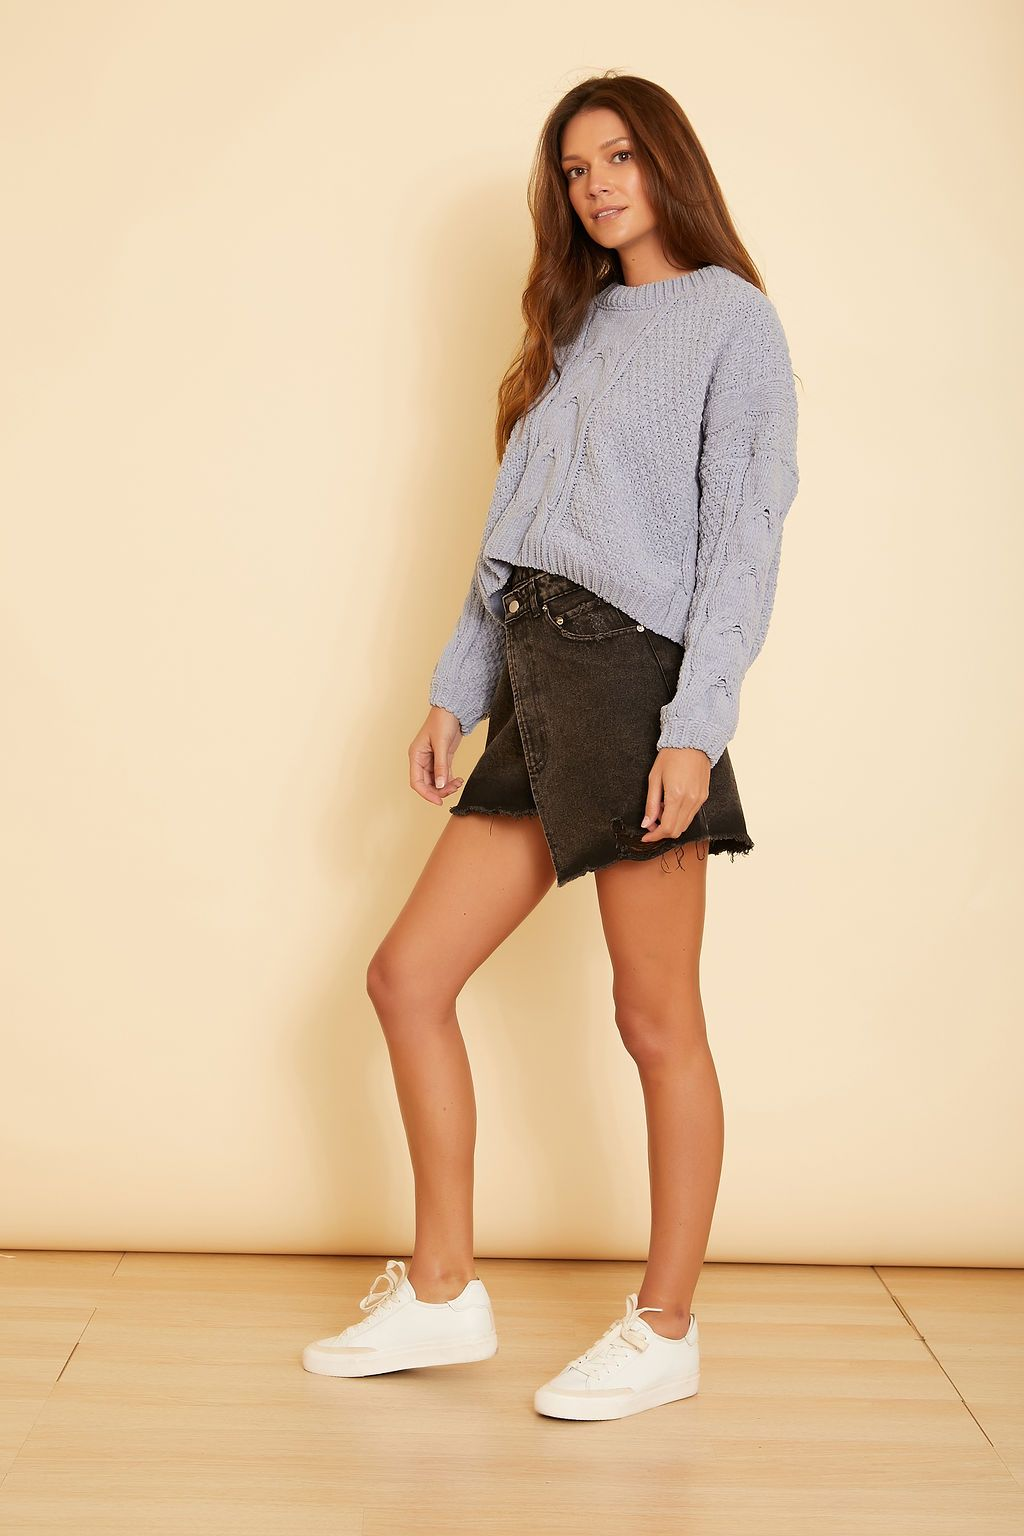 Dahlia Crop Sweater - wearNYLA